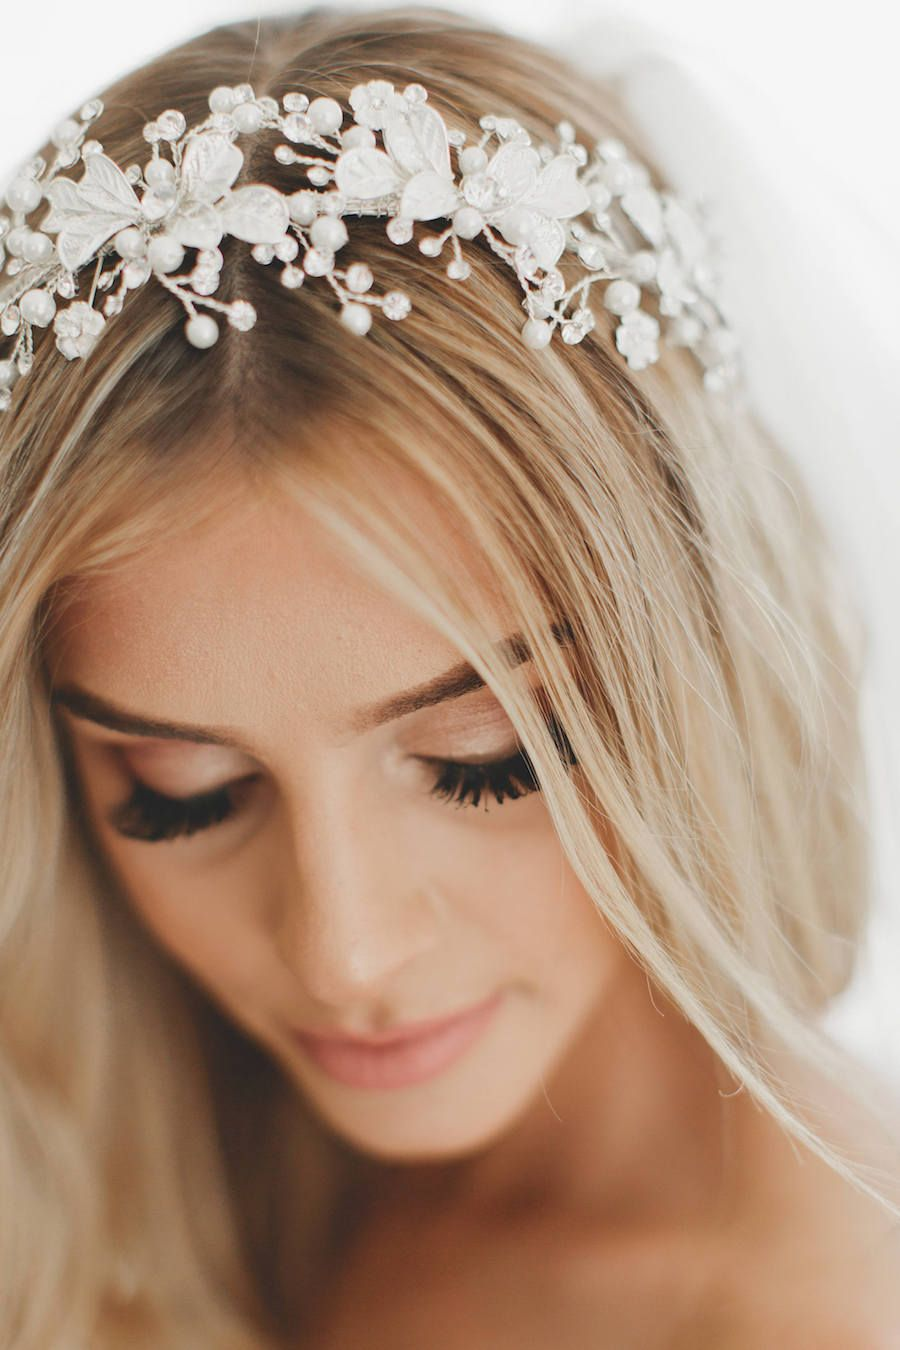 20 Gorgeous Bridal Headpieces For Sophisticated Brides Wedding Halo Headpiece Wedding Veils Headpieces Bride Headpiece